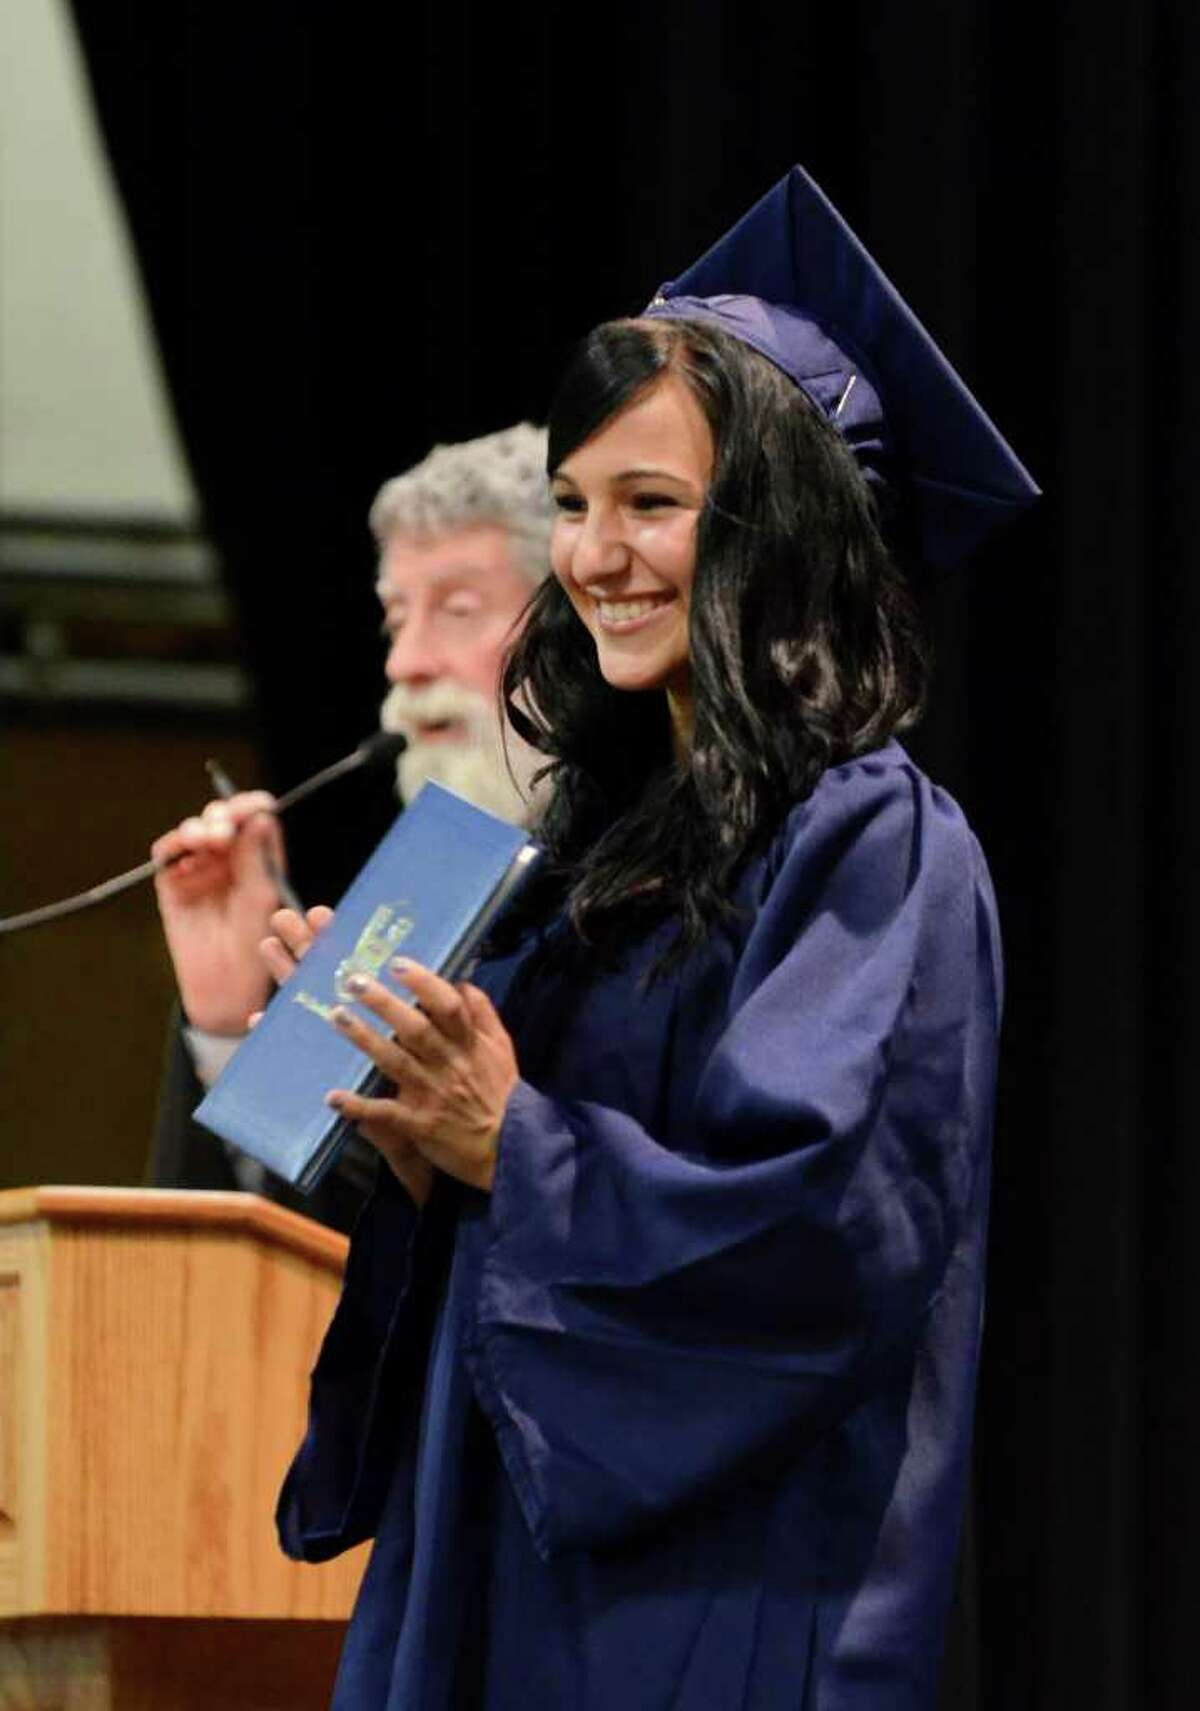 Paige Vichiola proudly displays her diploma during the 2011 Notre Dame Catholic High School Commencement at Notre Dame in Fairfield on Saturday, June 4, 2011.